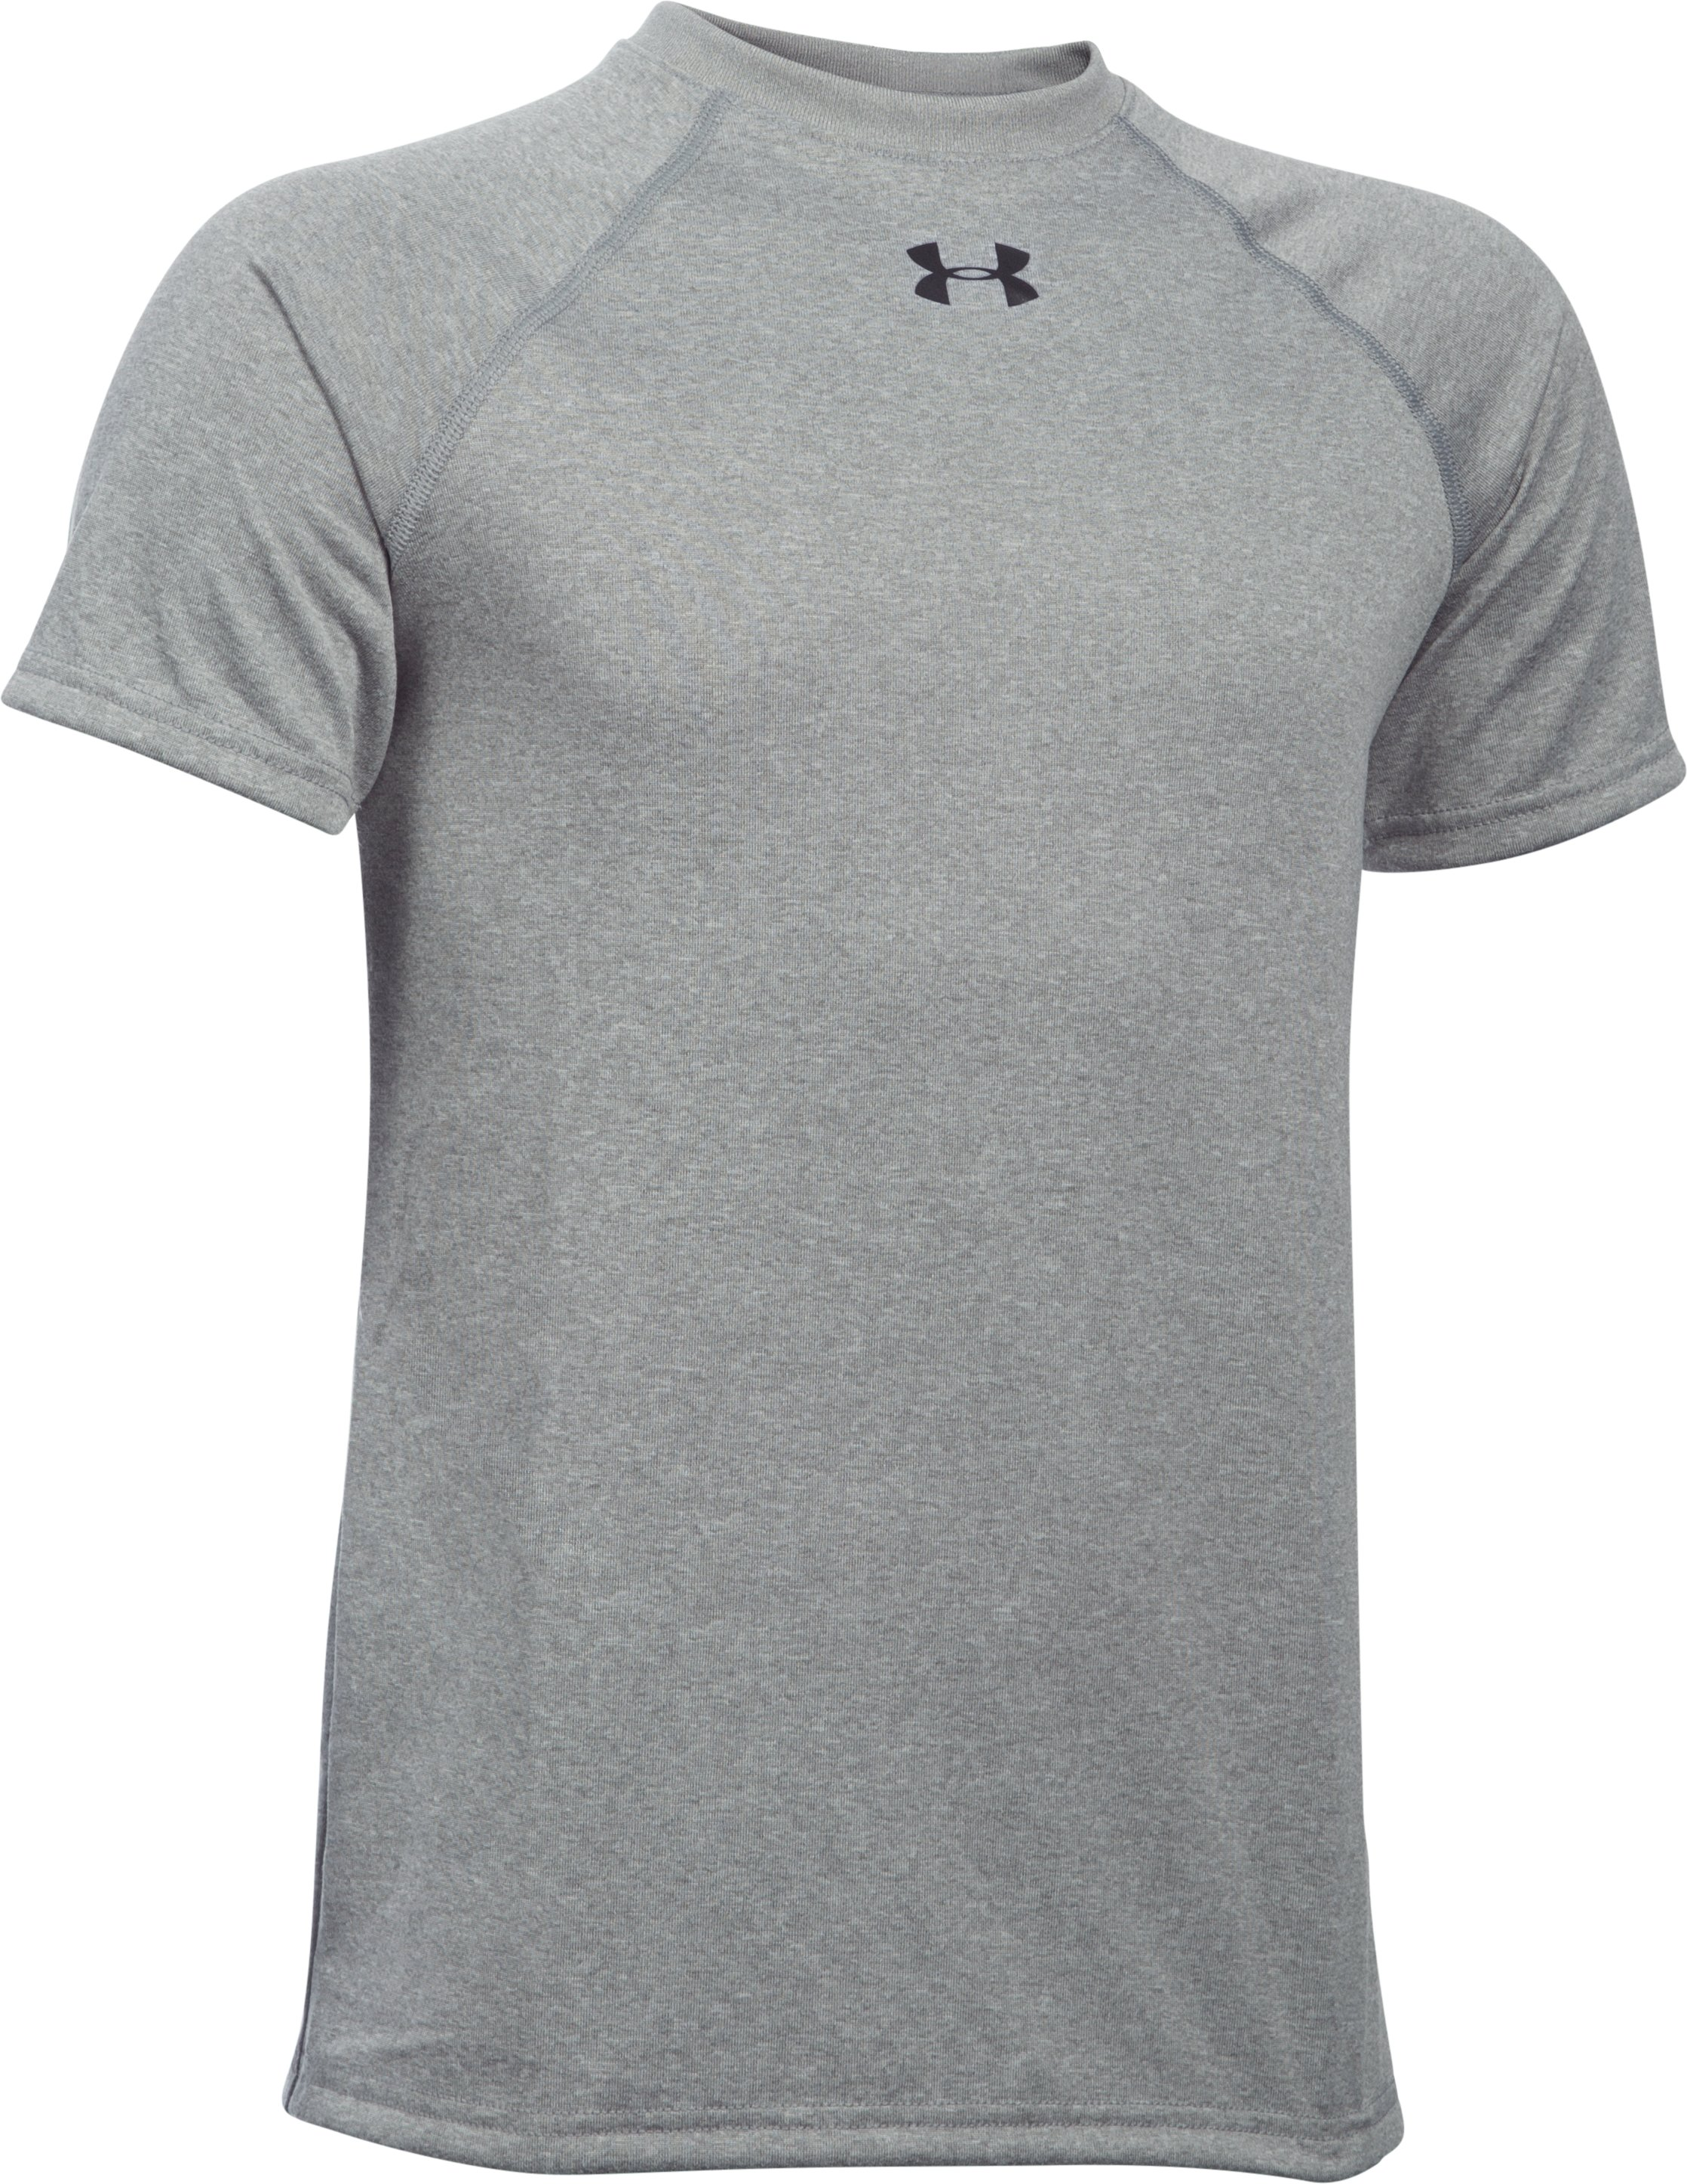 Boys' UA Locker Short Sleeve T-Shirt, True Gray Heather